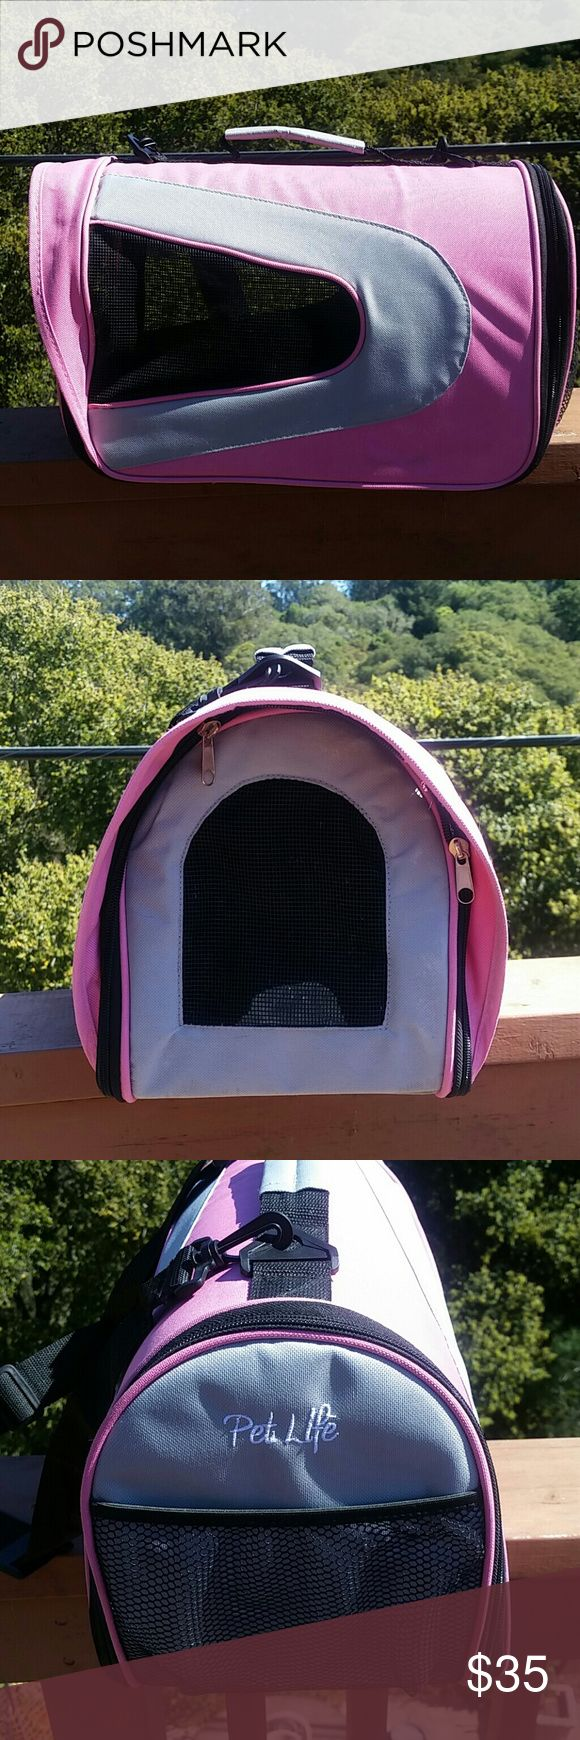 "Pink Pet Carrier. S For small pet or bunny. Very sturdy, Cat safe and puppy safe. I accidentally purchased too small. Light weight, but sturdy, and cushioned to keeep pets comfy.  For a small kitten, bunny, guinnea pig, or tiny dog  12"" L x 7"" W x 10"" H  Zips all around Removable and adjustable staps. Pet Life Bags"